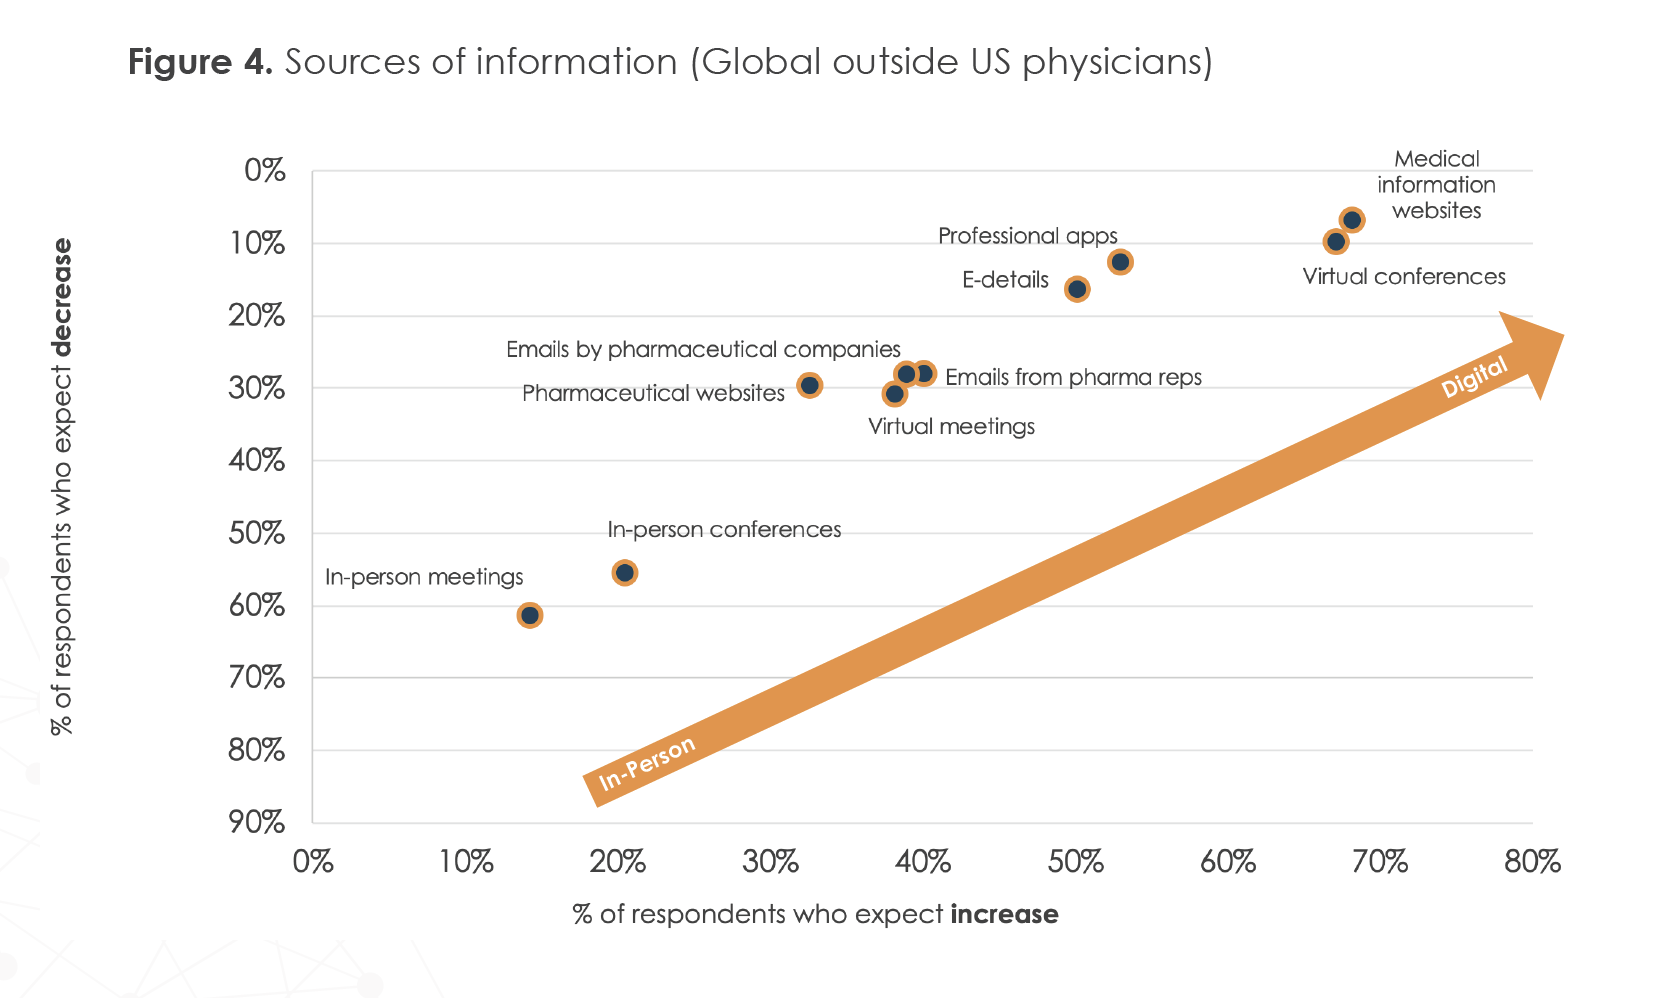 Figure 4. Sources of information (Global outside US physicians)